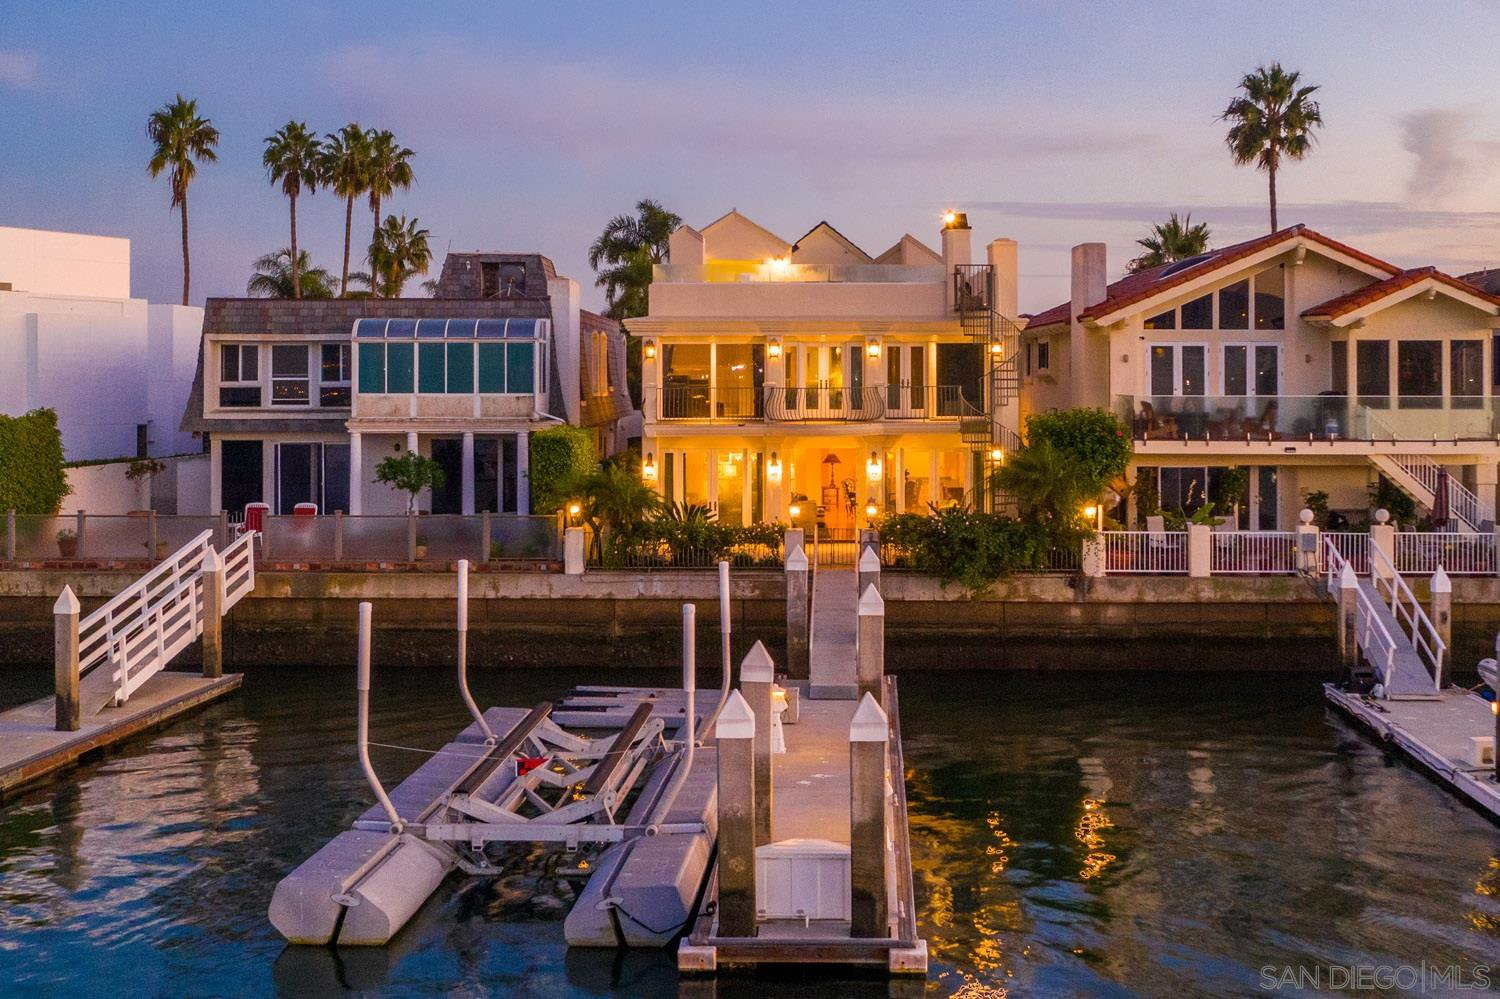 Main Photo: CORONADO CAYS House for sale : 5 bedrooms : 11 The Point in Coronado